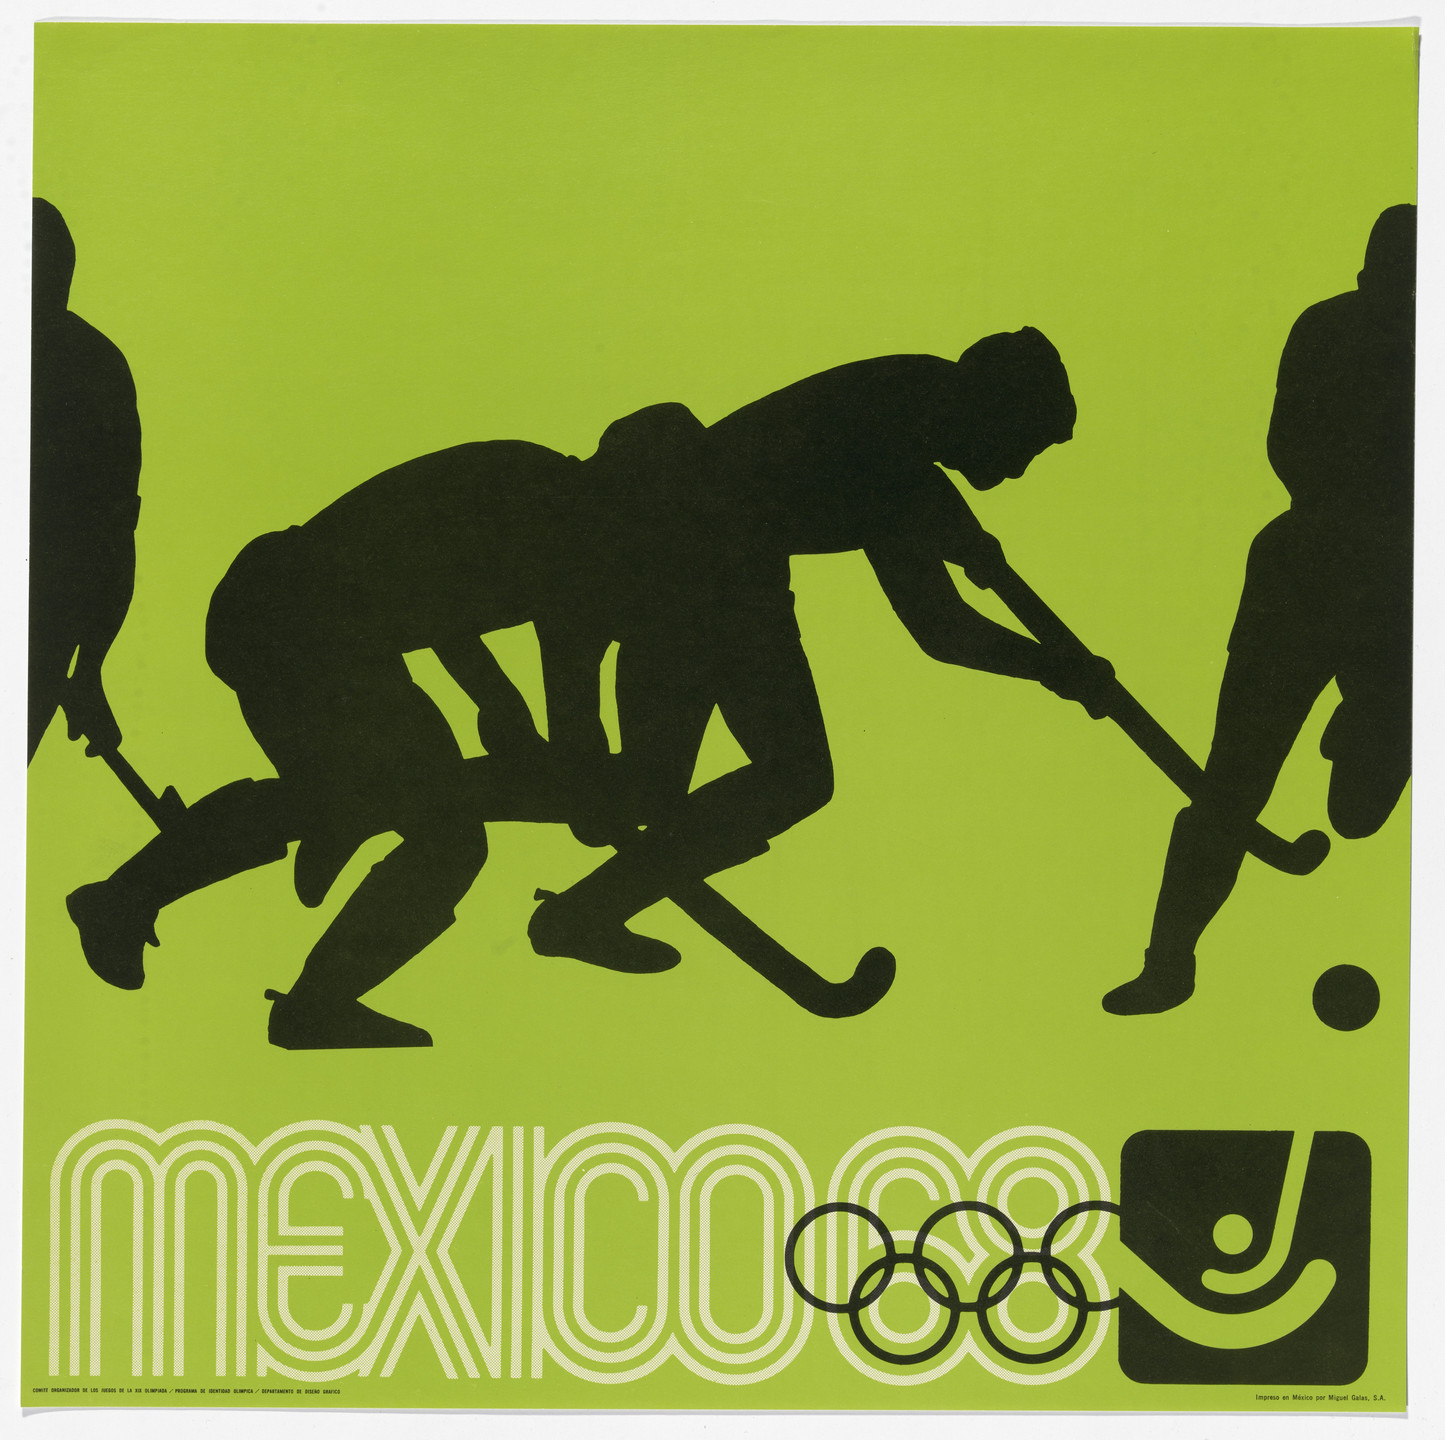 Lance Wyman, Department of Publications and Urban Design, Organizing Committee of the XIX Olympiad. Mexico City 1968 Olympics: Field Hockey. c. 1968